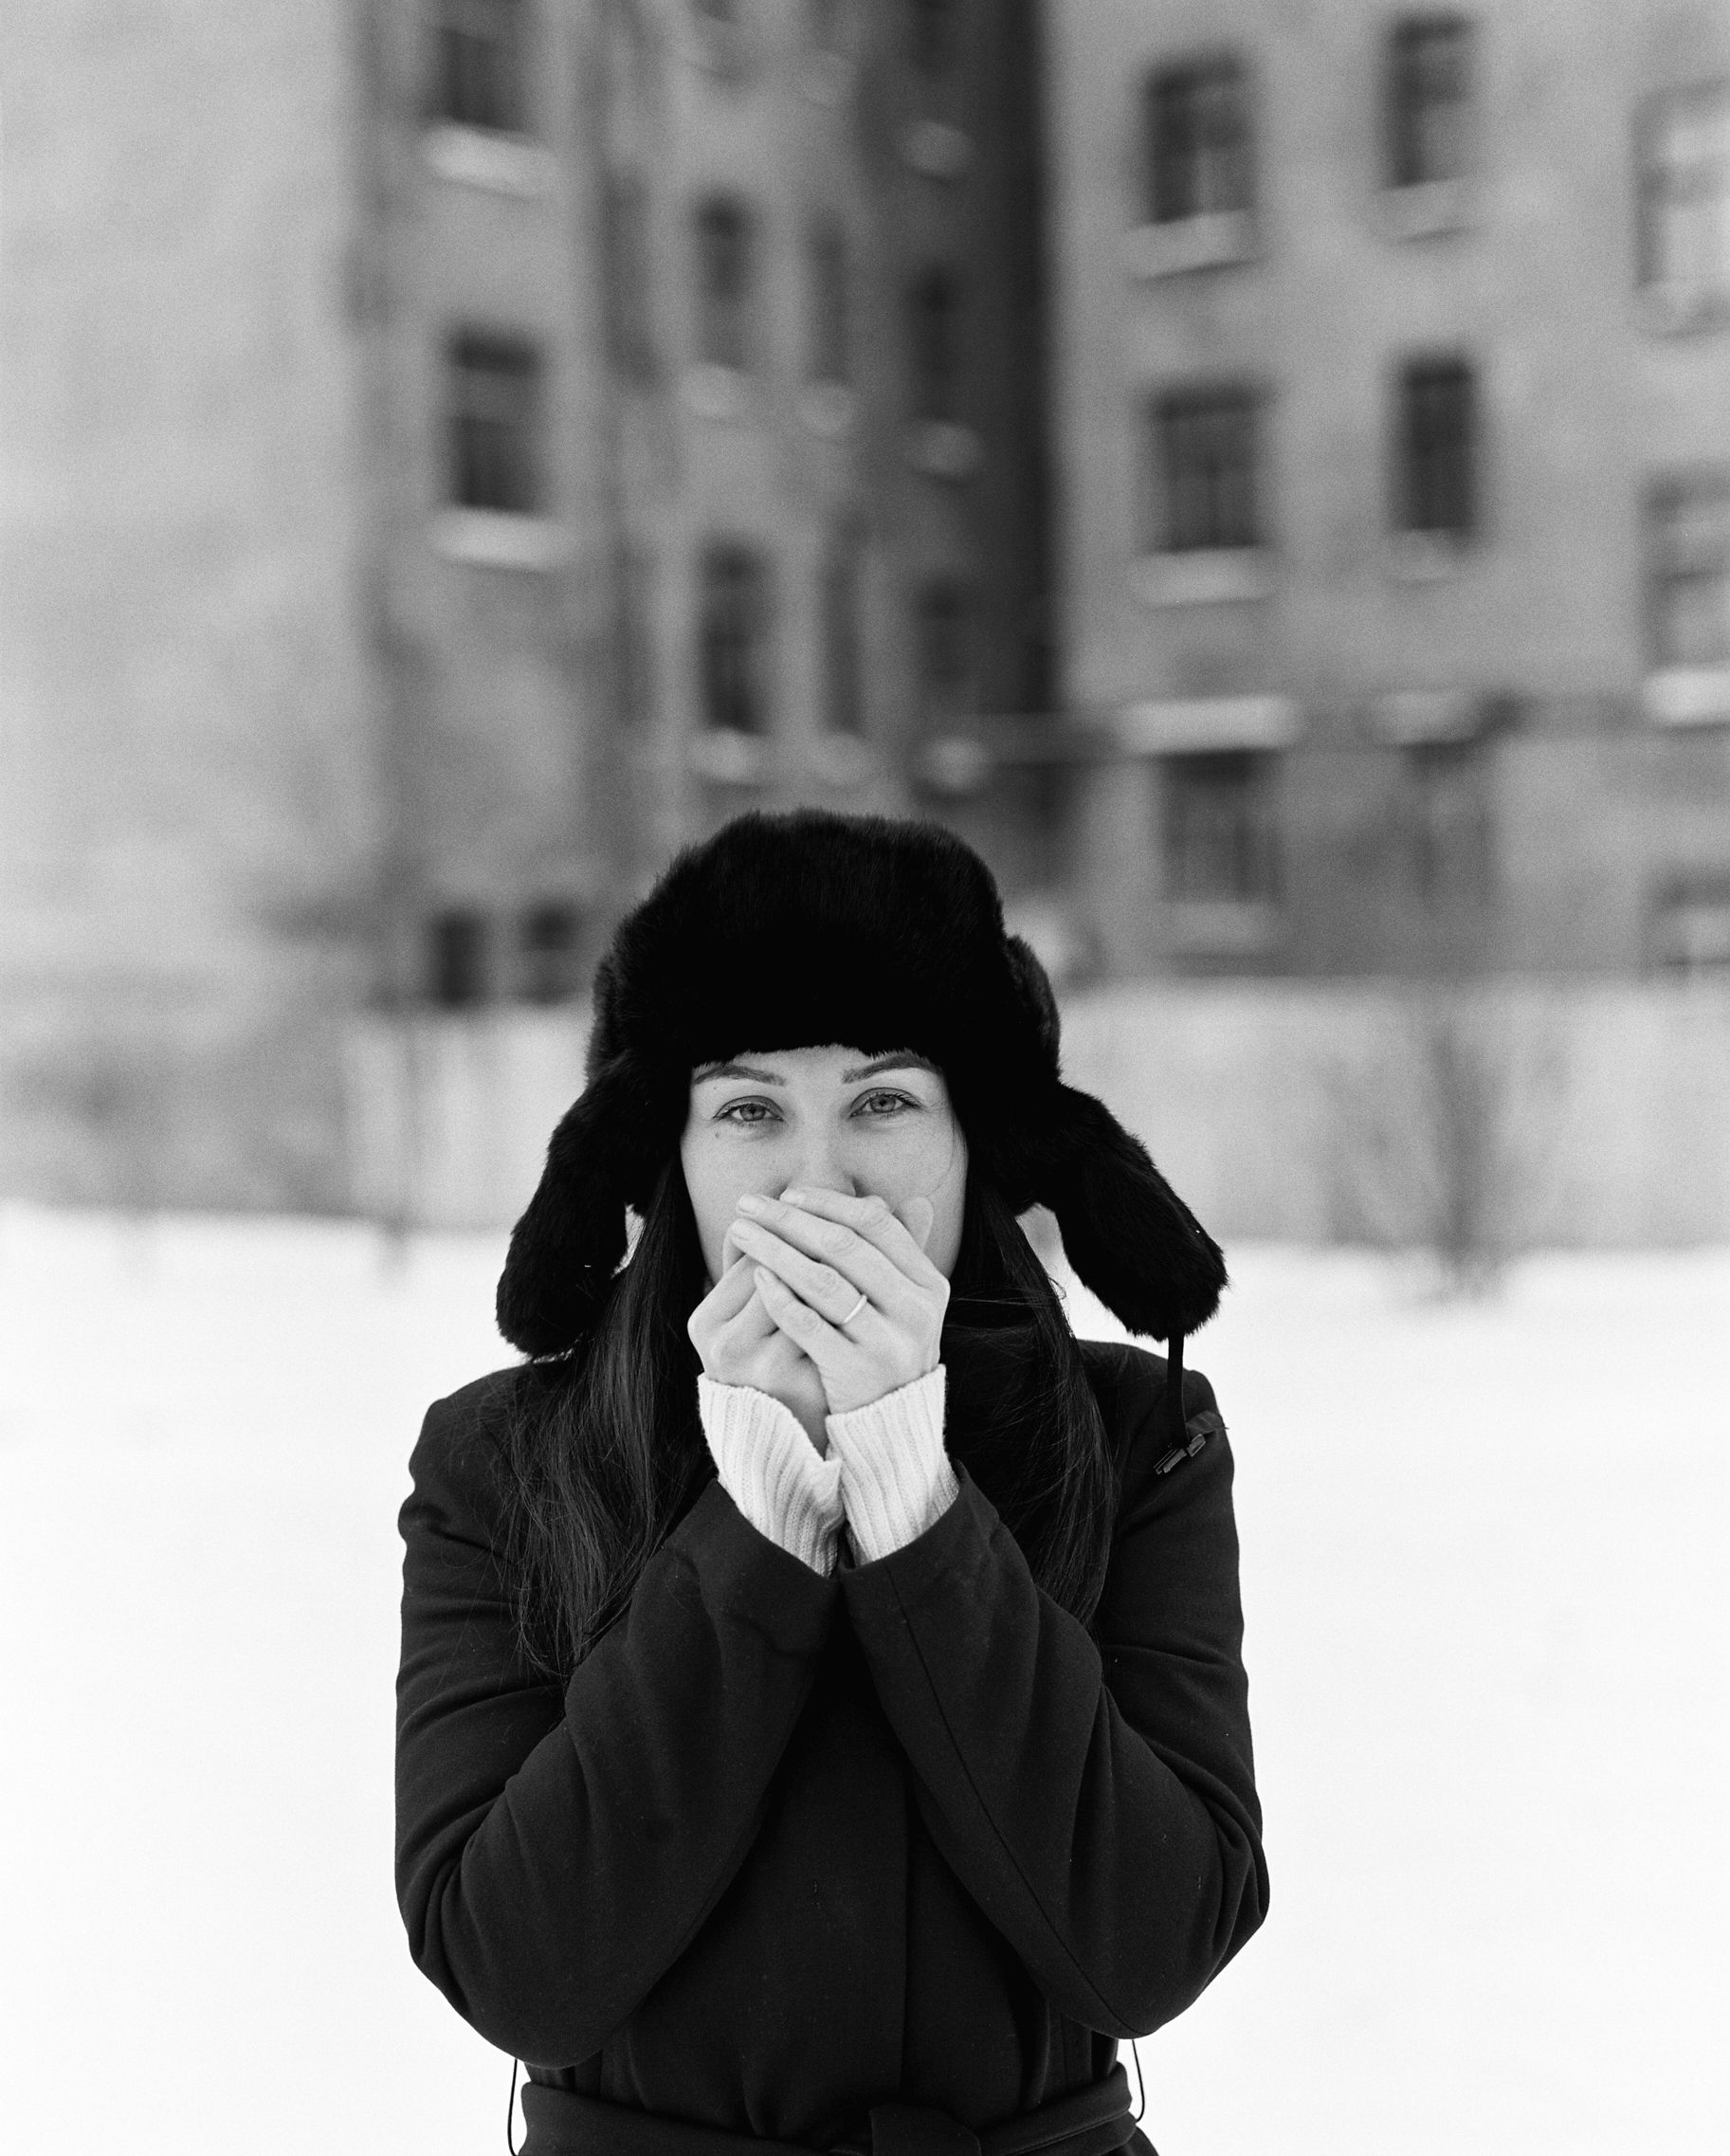 Winter portrait shoot by Dmitry Serostanov